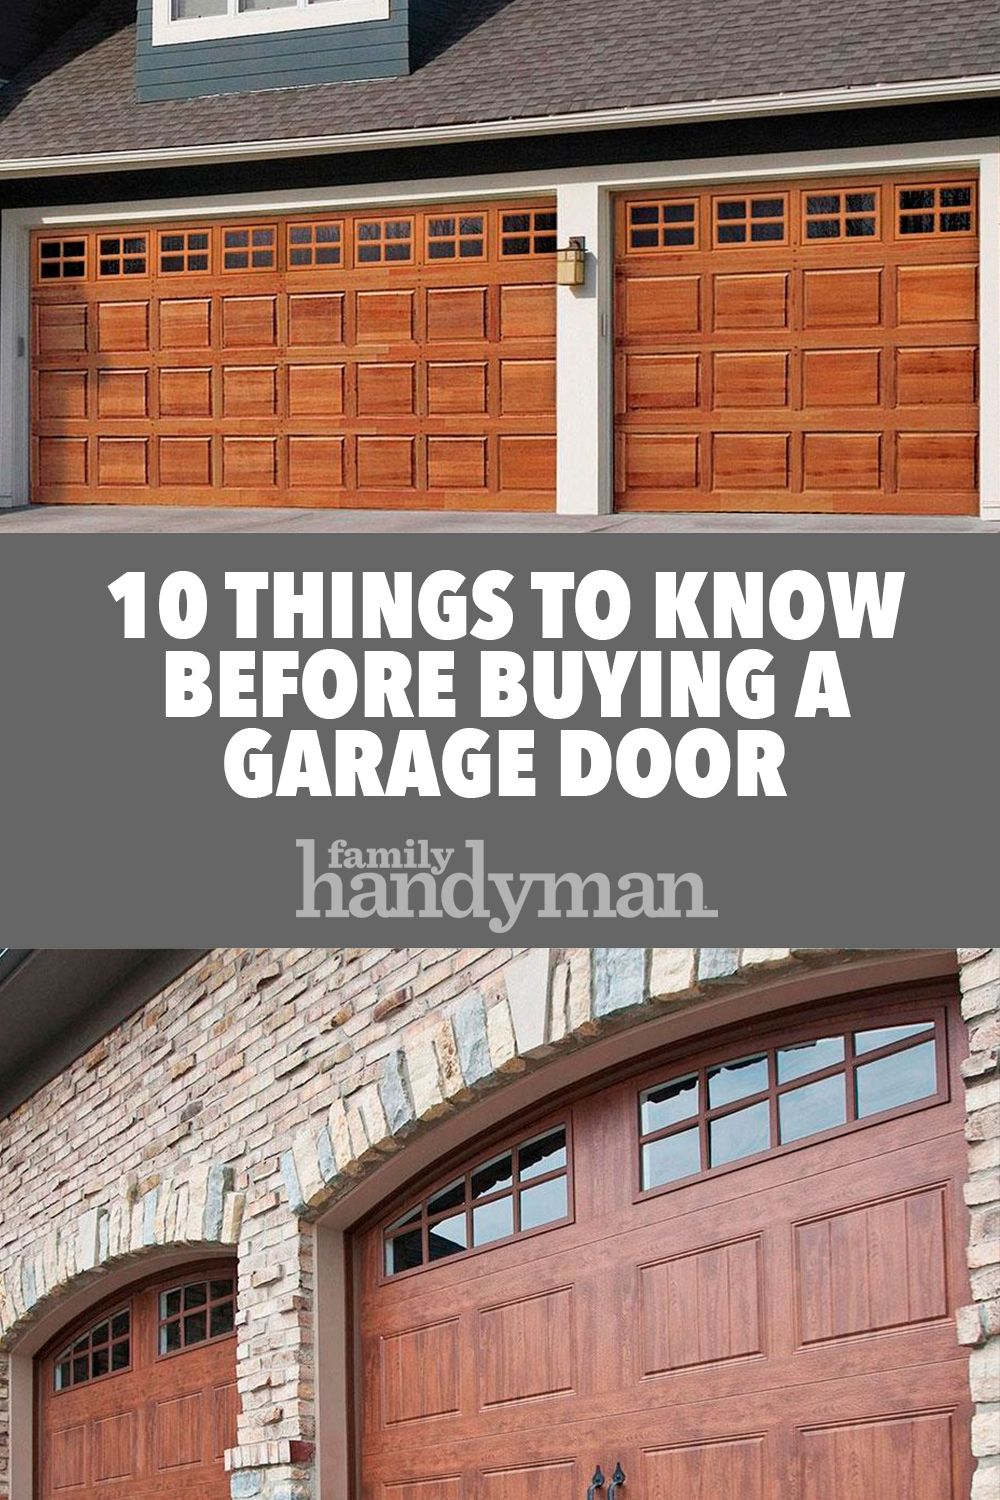 10 Things To Know Before Buying A Garage Door Garage Doors Buy A Garage Garage Door Design